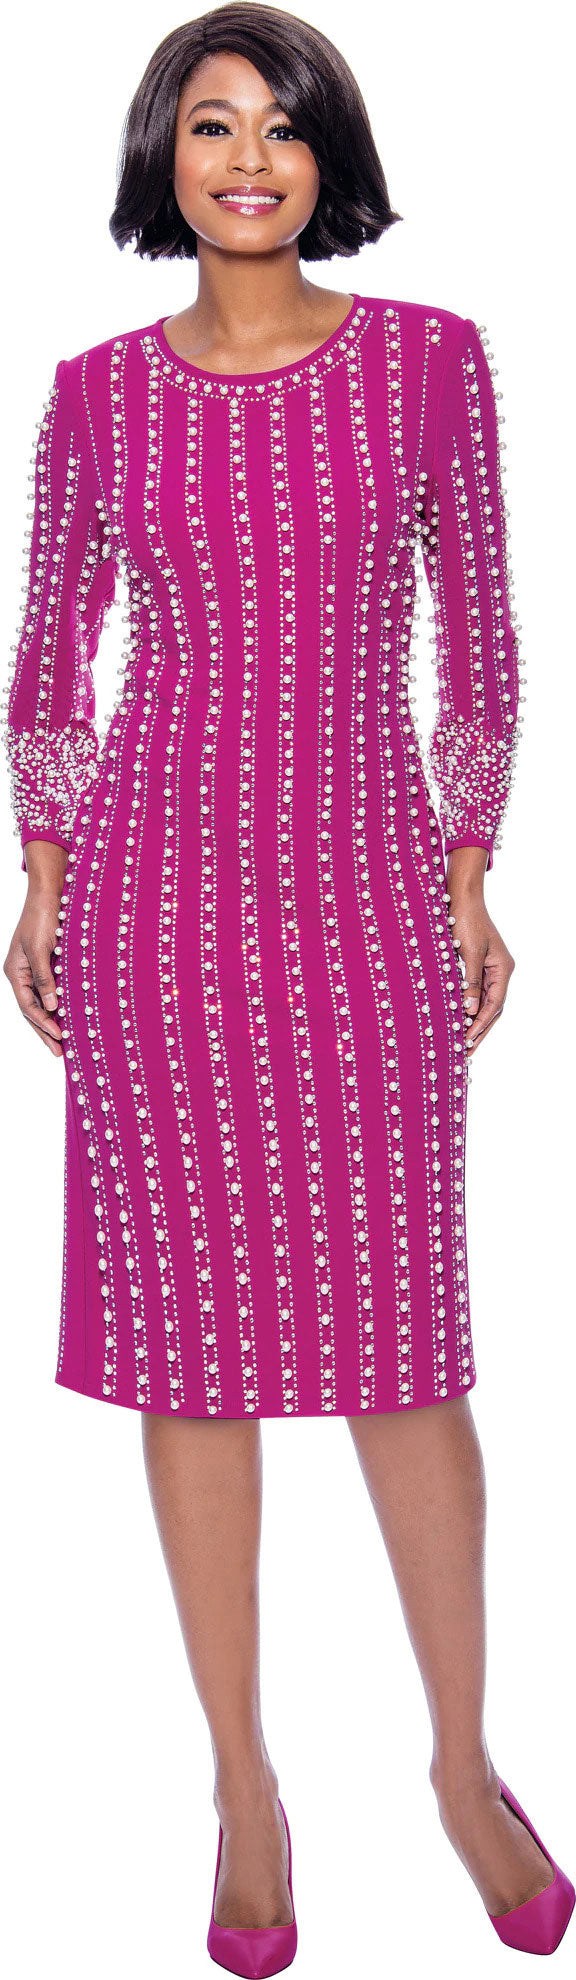 Susanna Dress 3961-Magenta - Church Suits For Less